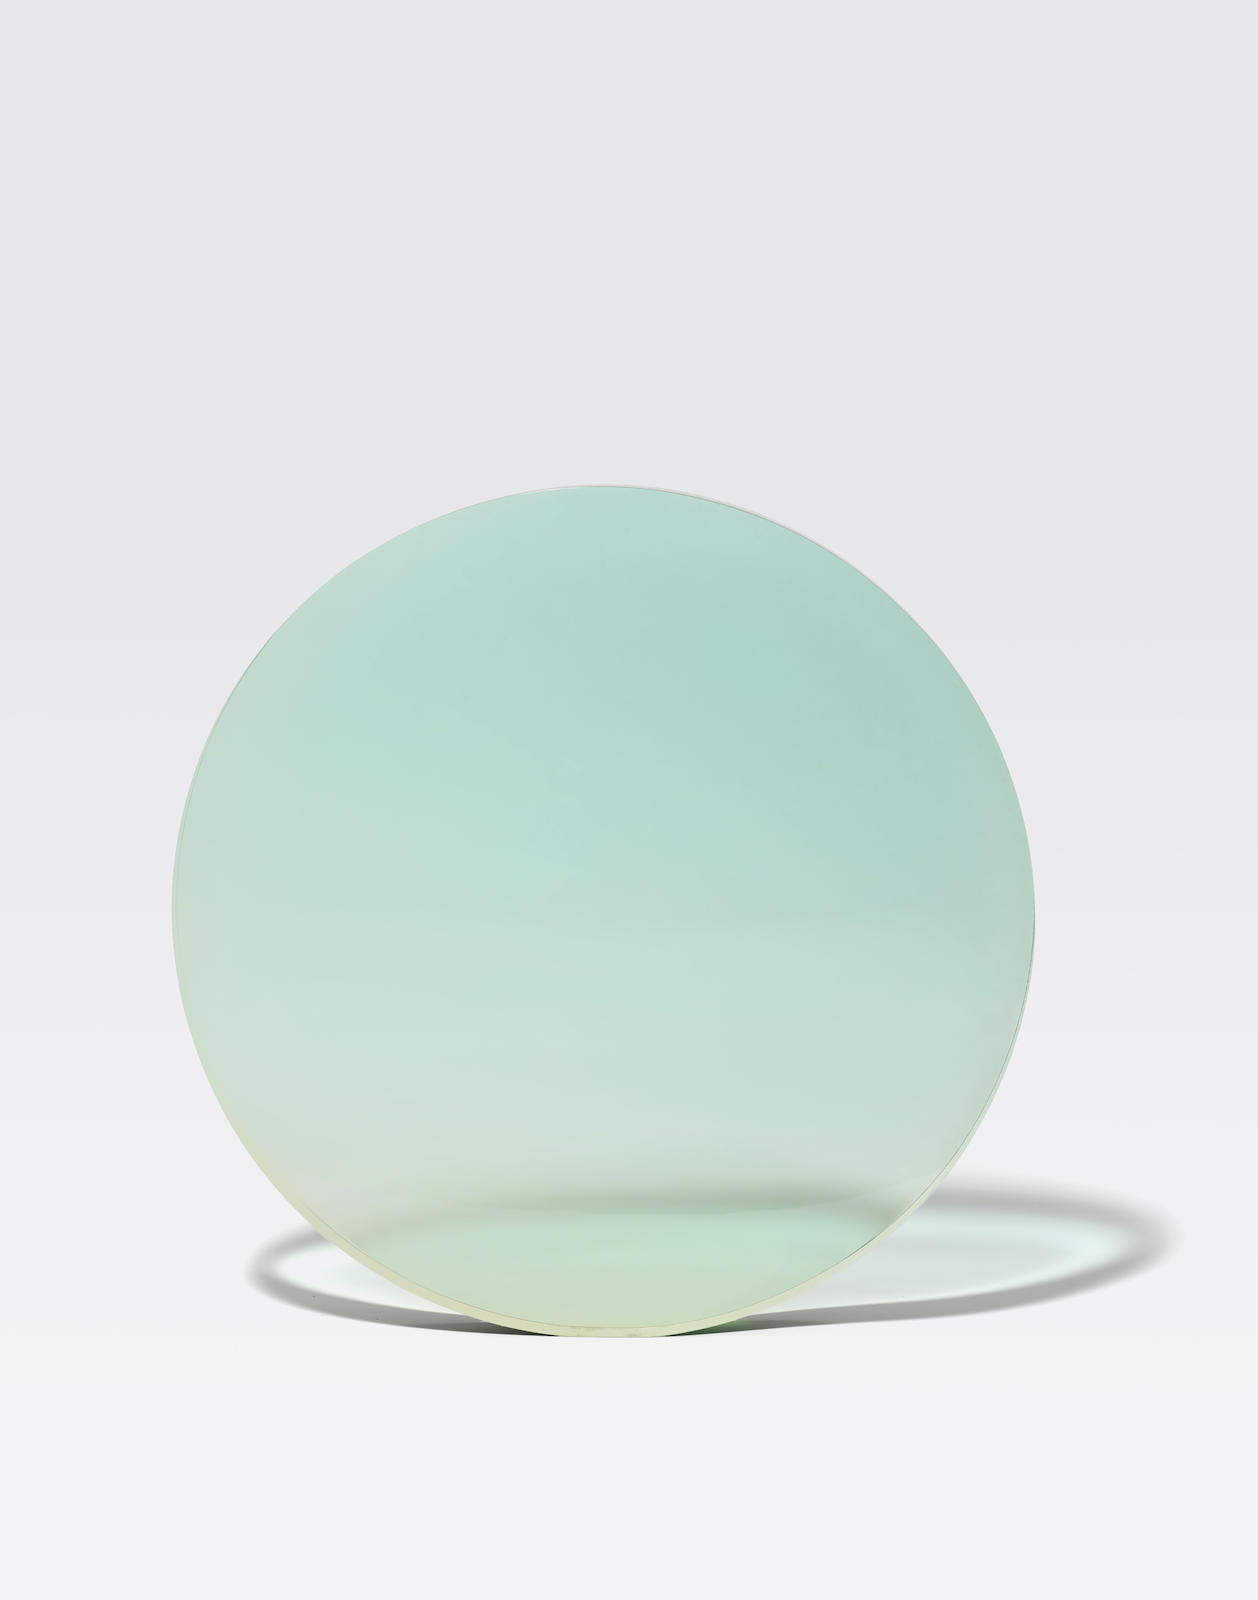 De Wain Valentine-Circle Light-green to Light-blue-1975